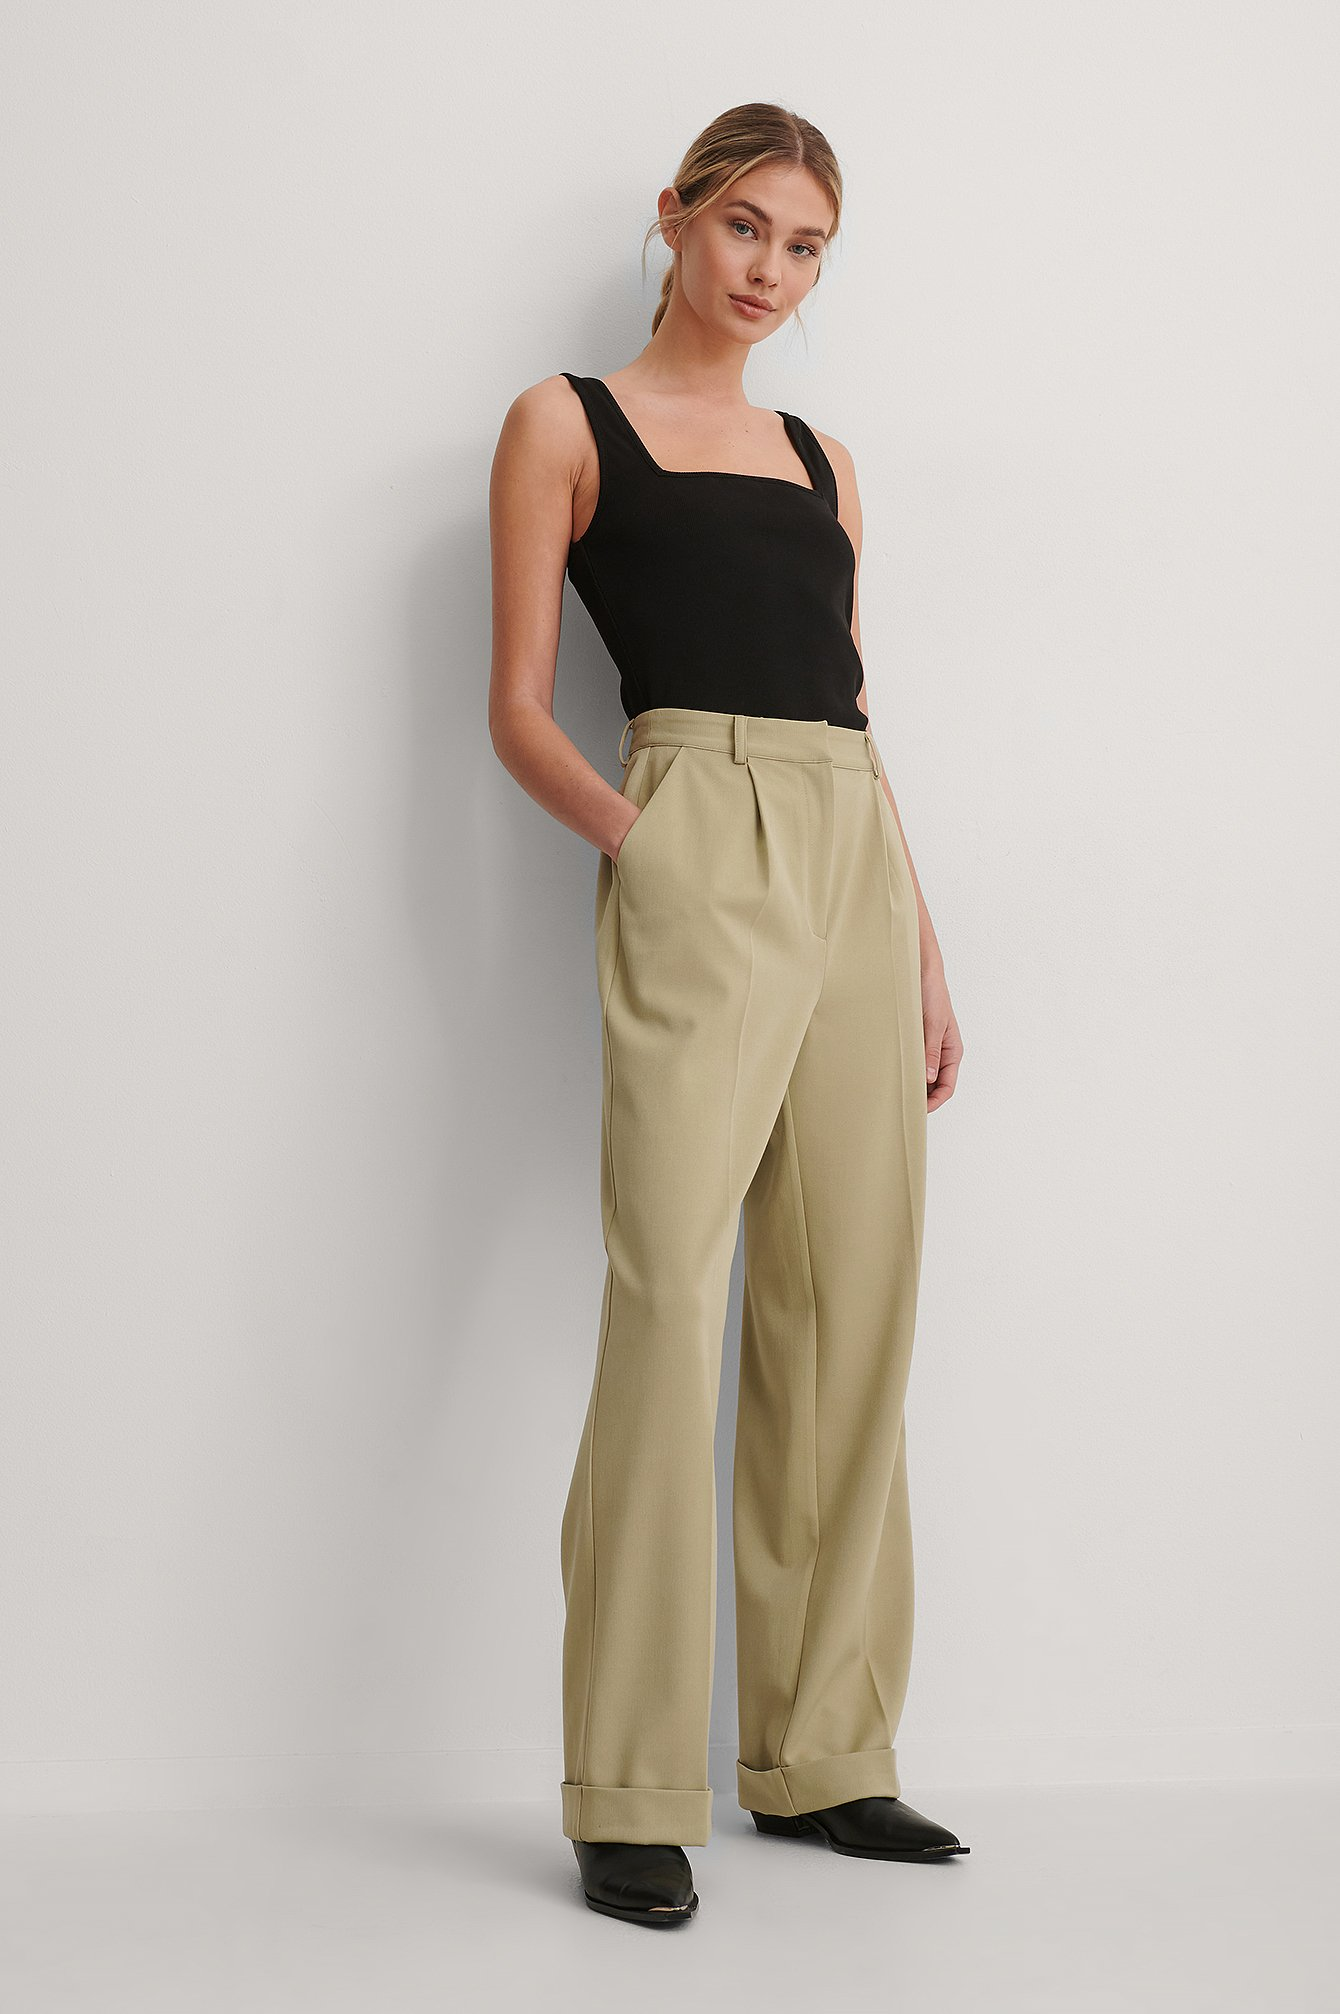 Khaki Pleat Suit Pants